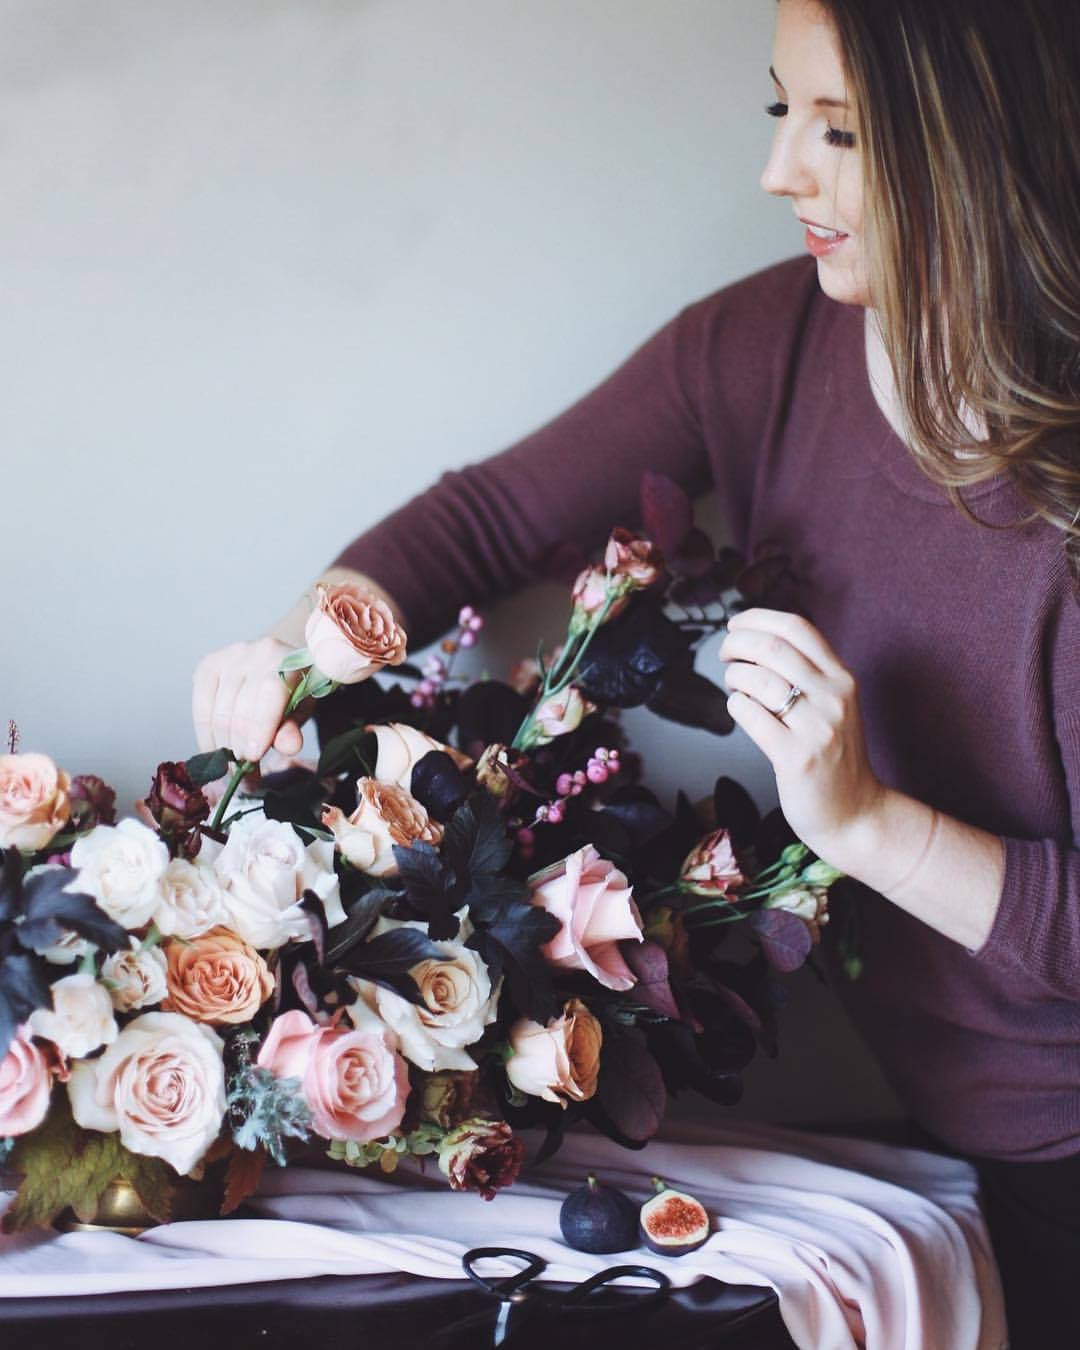 Hi there! - I'm Cristina! I'm a floral designer from St-Lazare, QC, and I am hopelessly in love with flowers. My specialty is crafting florals for intimate weddings and events that have a refined yet gardenesque aesthetic. I take a very personalized approach to floral design and love to work closely with my clients, while keeping the process simple and relaxed. Can't wait to grab a coffee and hear all about your dream wedding!